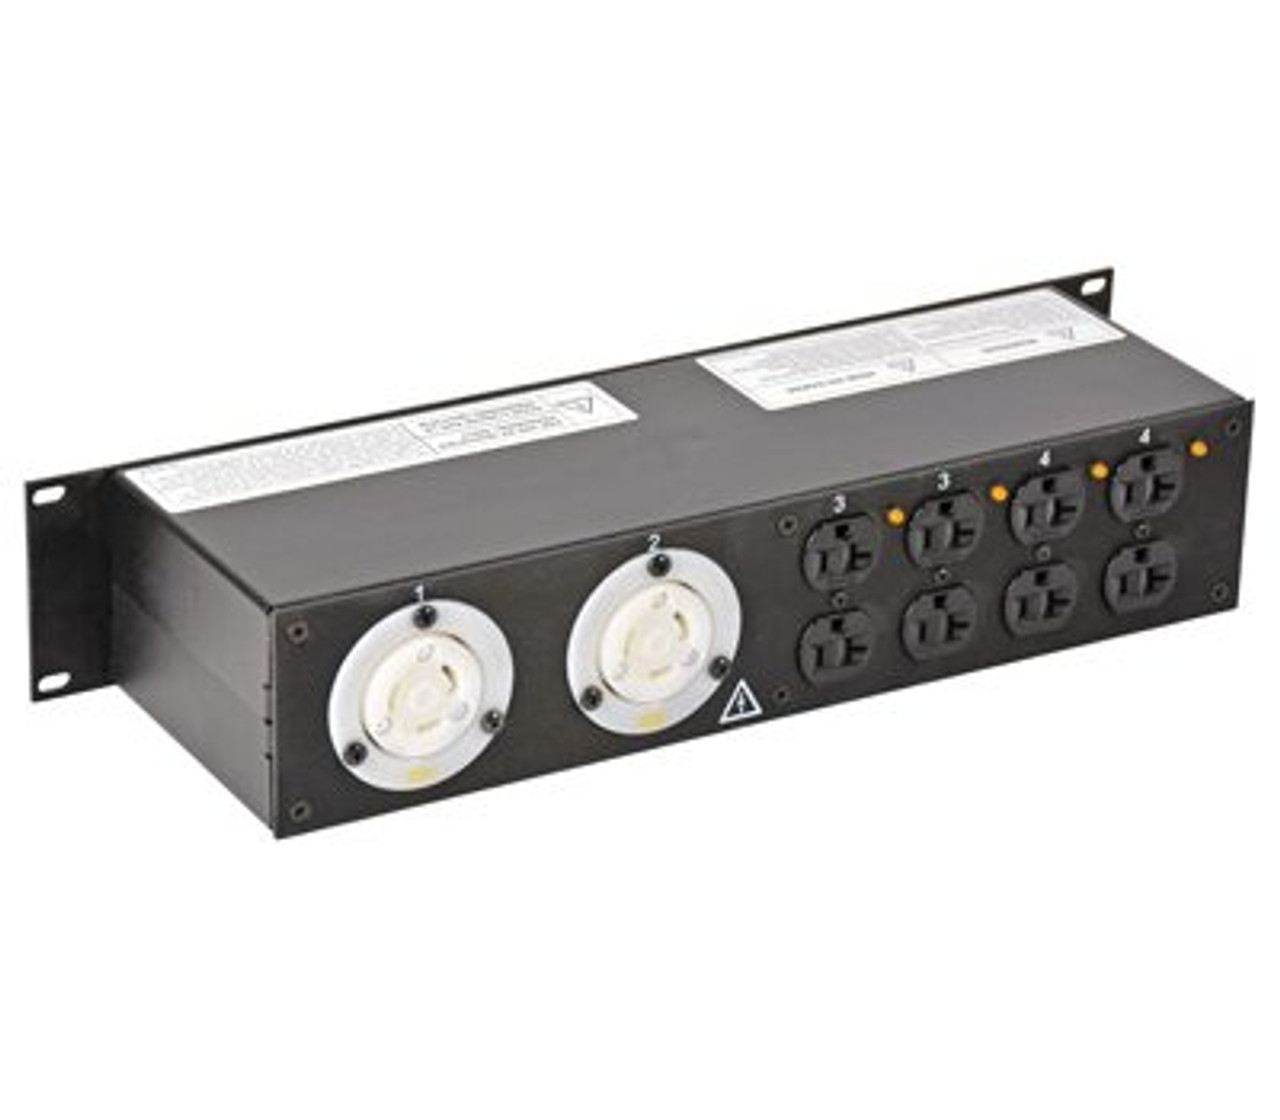 Lex 2RU Rack Mount Power Distribution, L14-30 In/Thru to (2) L5-30 and Duplexes